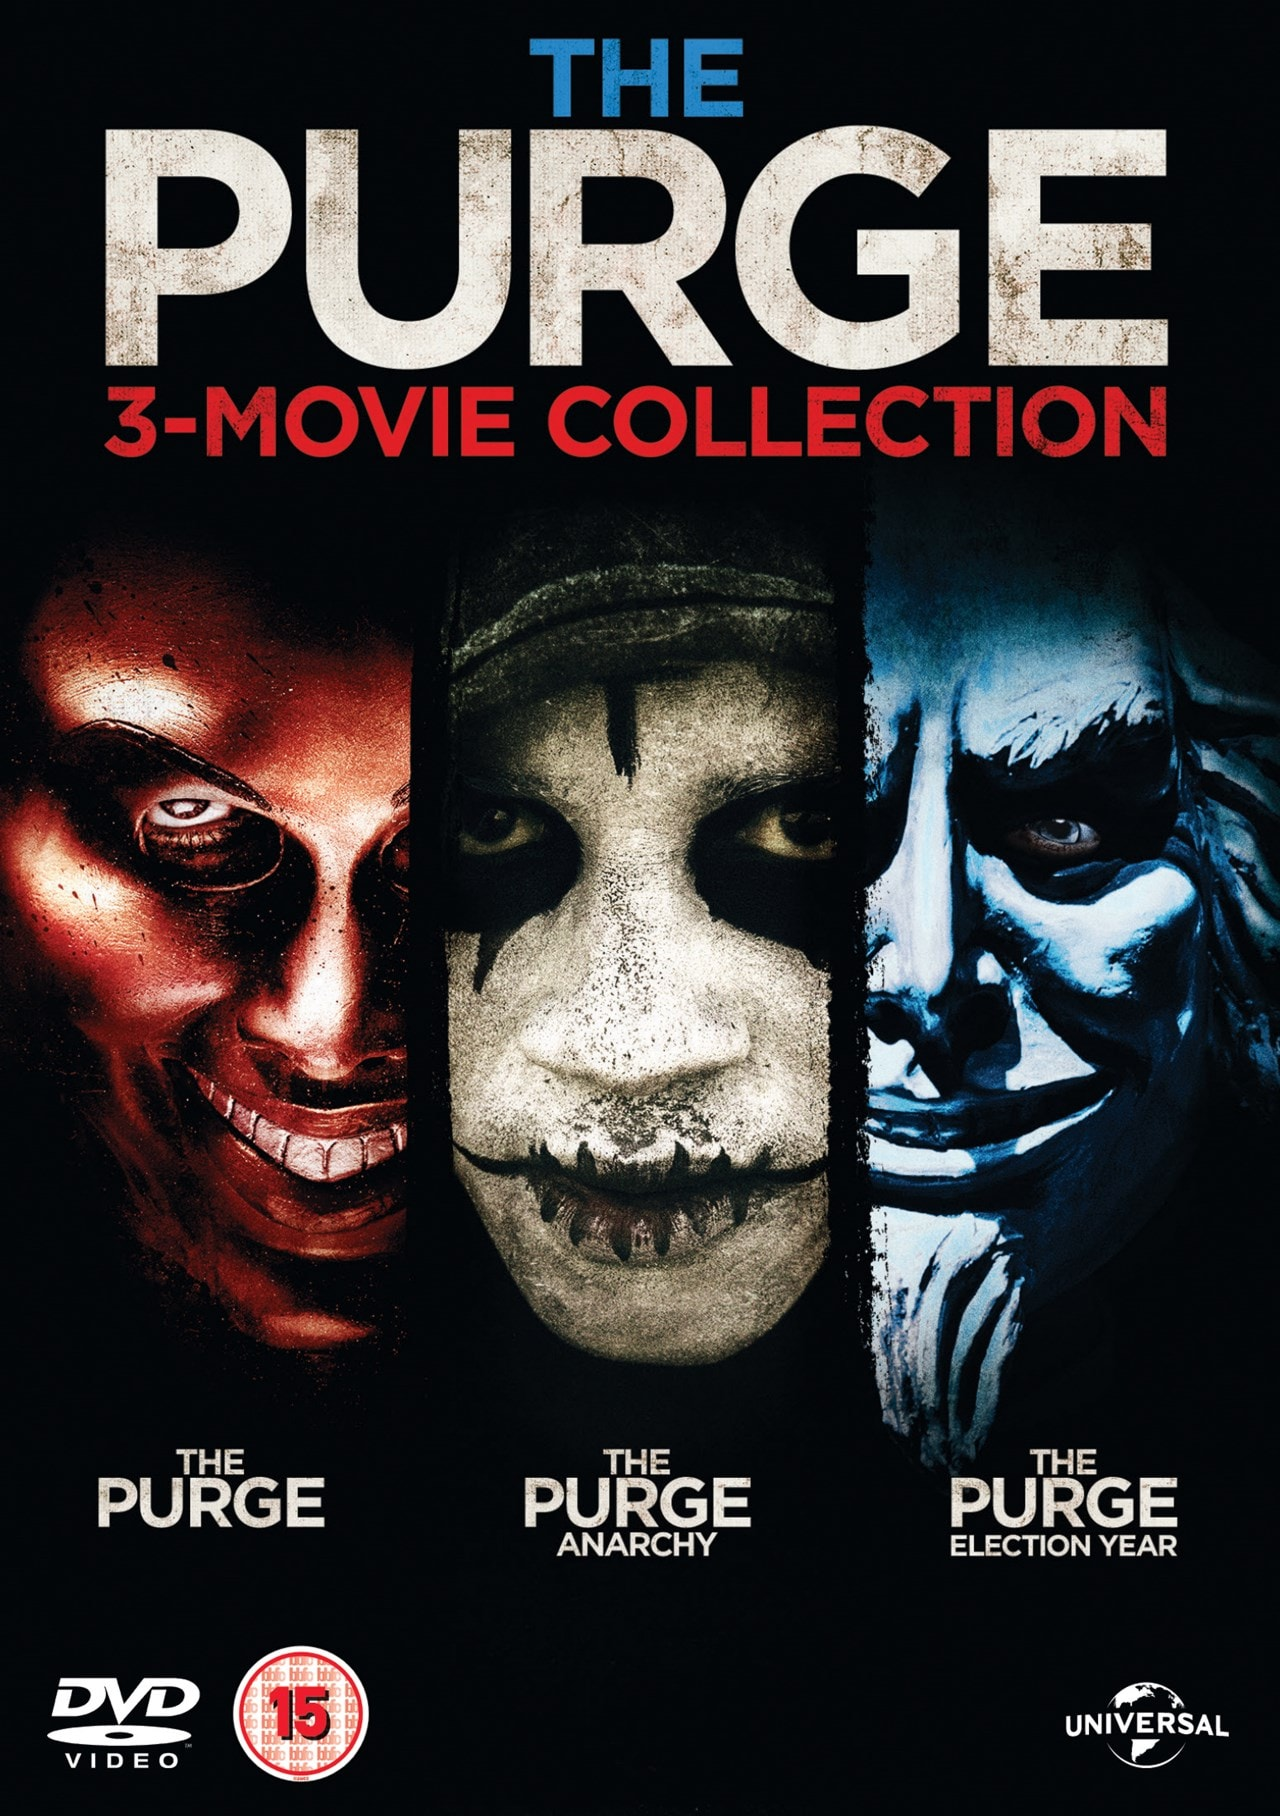 The Purge: 3-movie Collection - 1